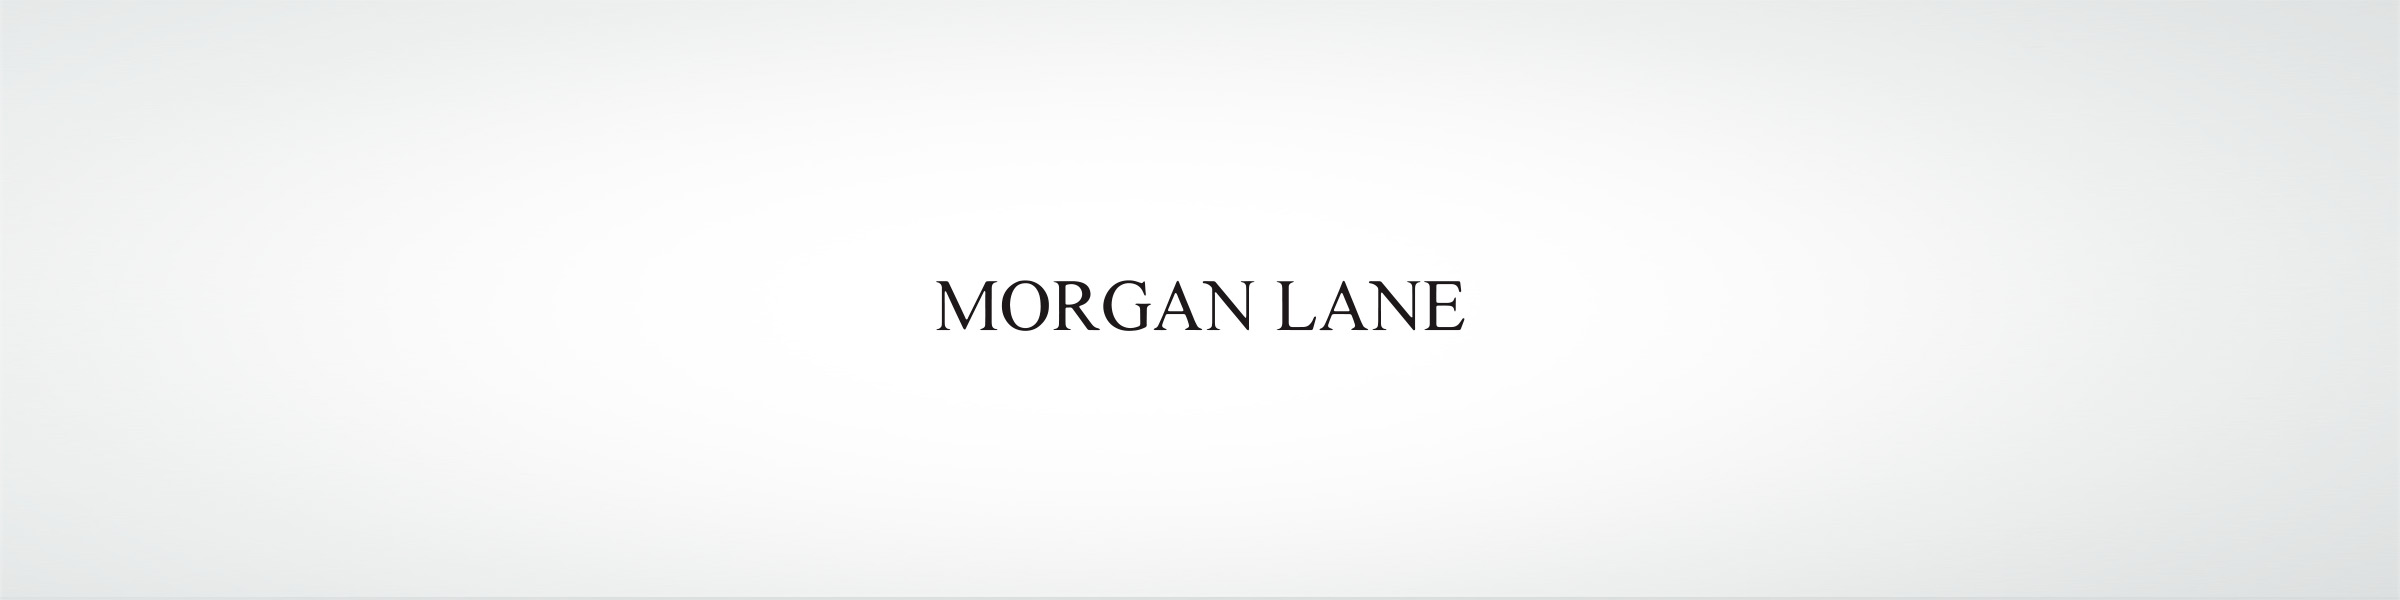 032014 MORGAN LANE